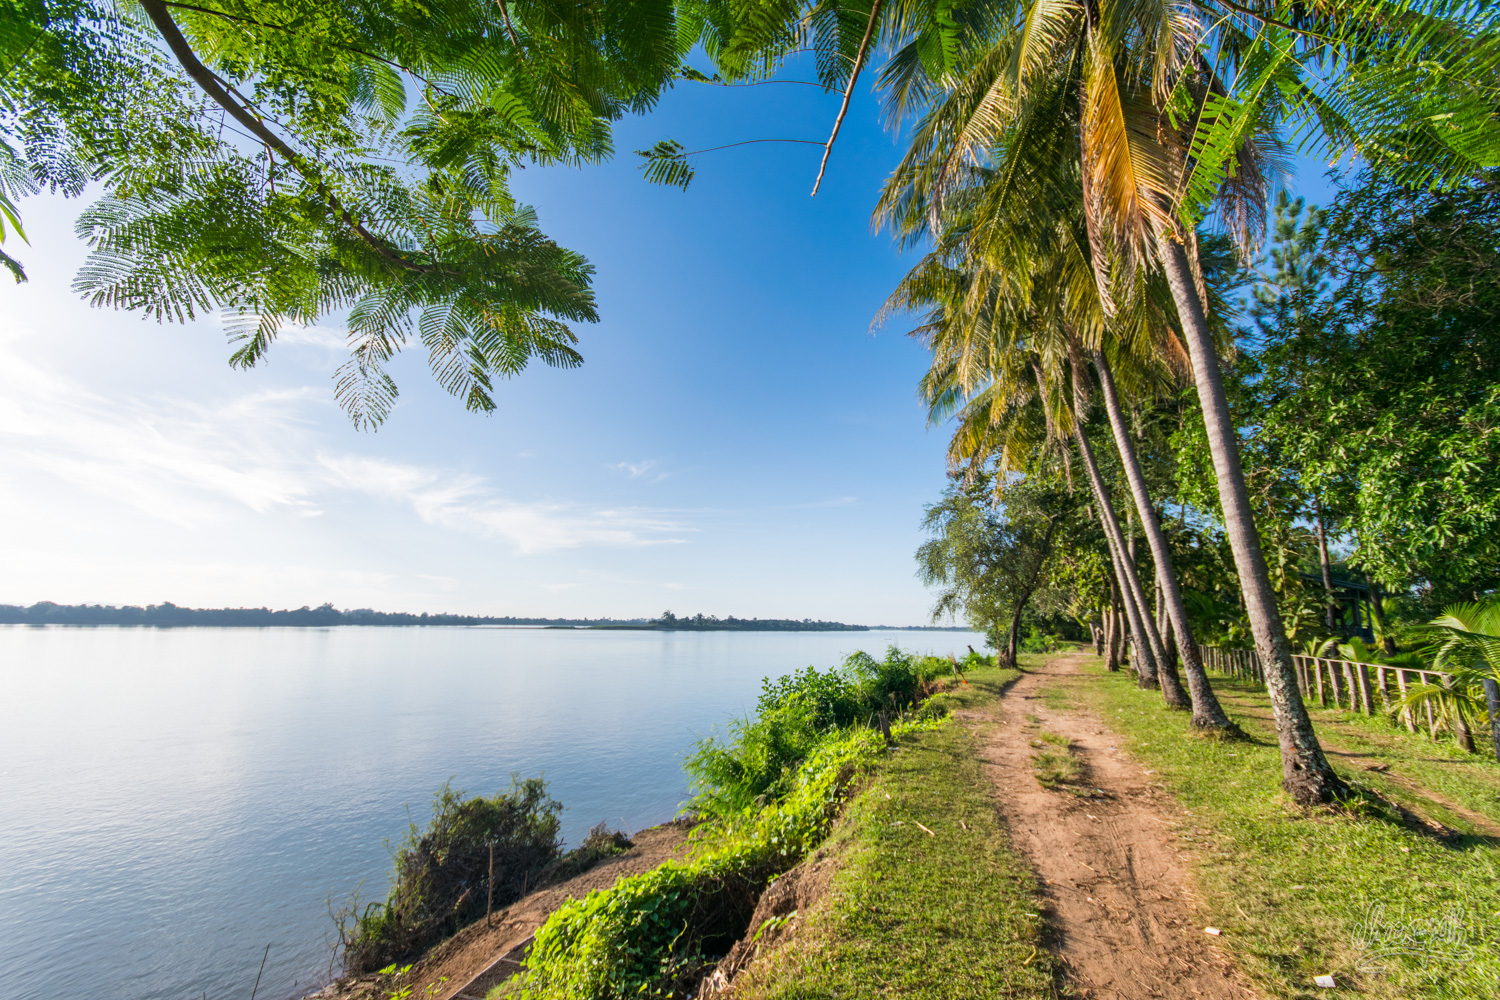 The path along the Mekong